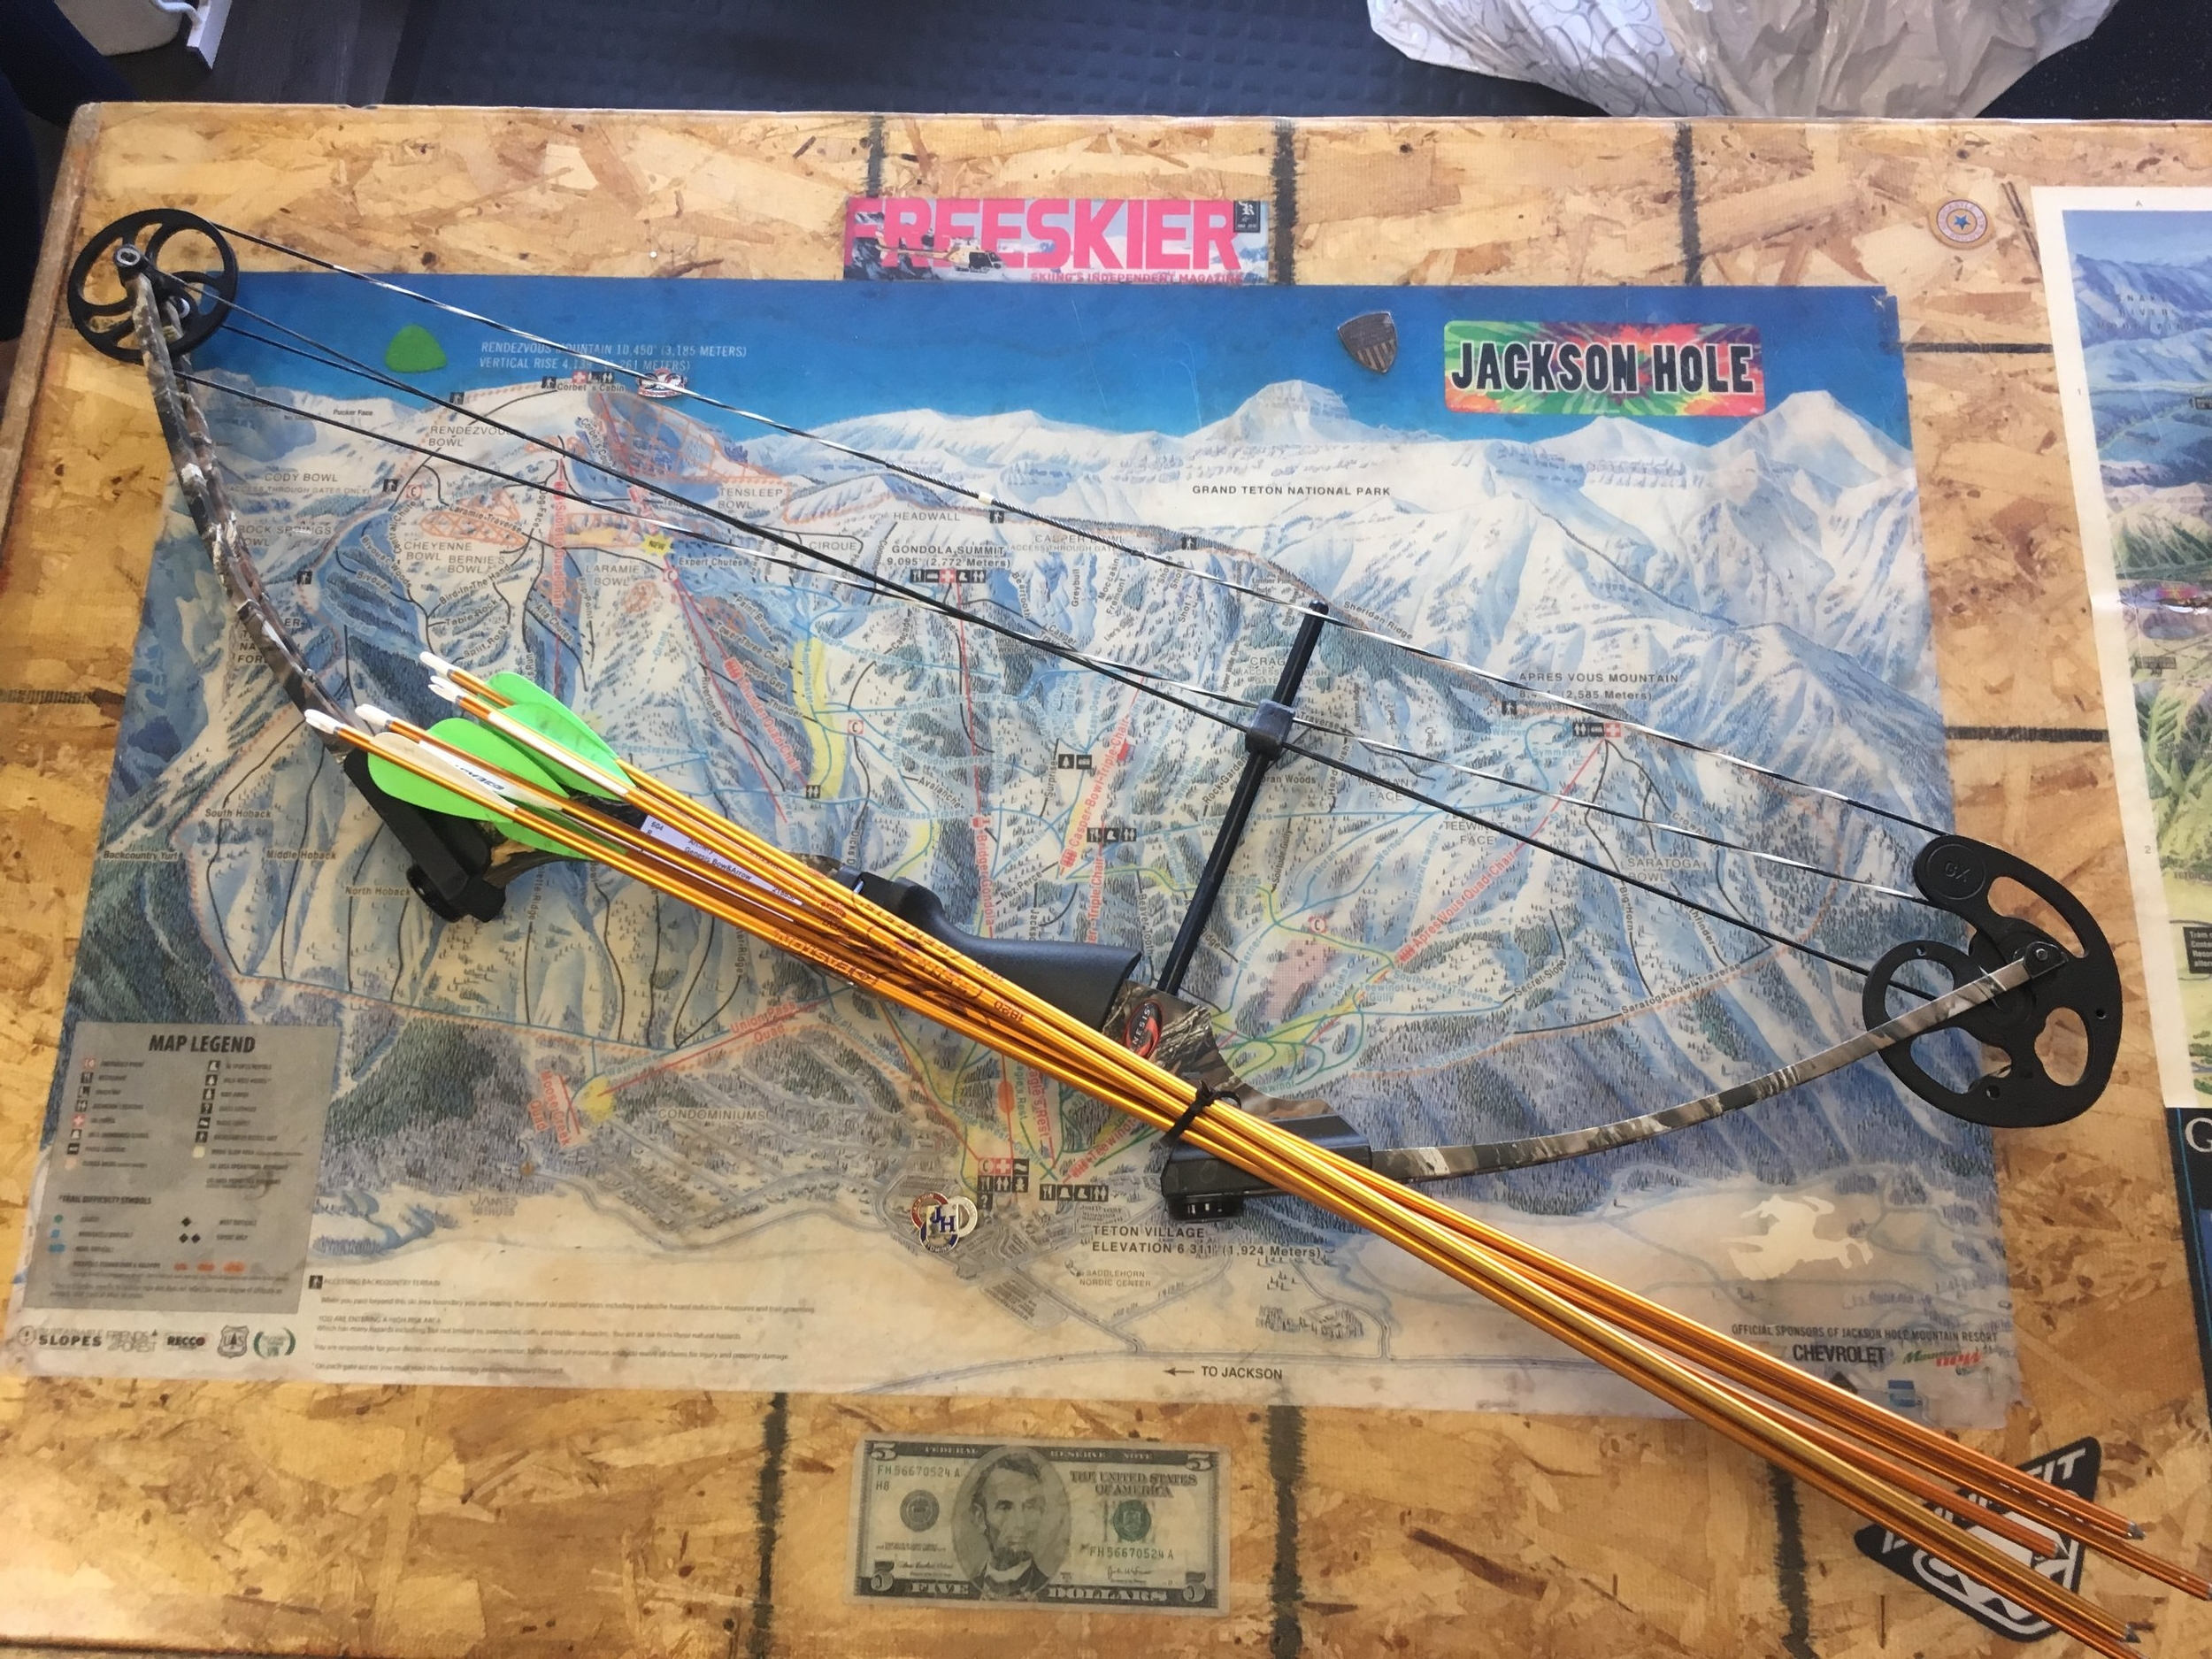 Get shooting with the Genesis Original bow! The bow has just one cam which means no tuning problems, much less recoil, more accurate shooting, and less noise. Retail is listed at $220 but we can got you covered for $99